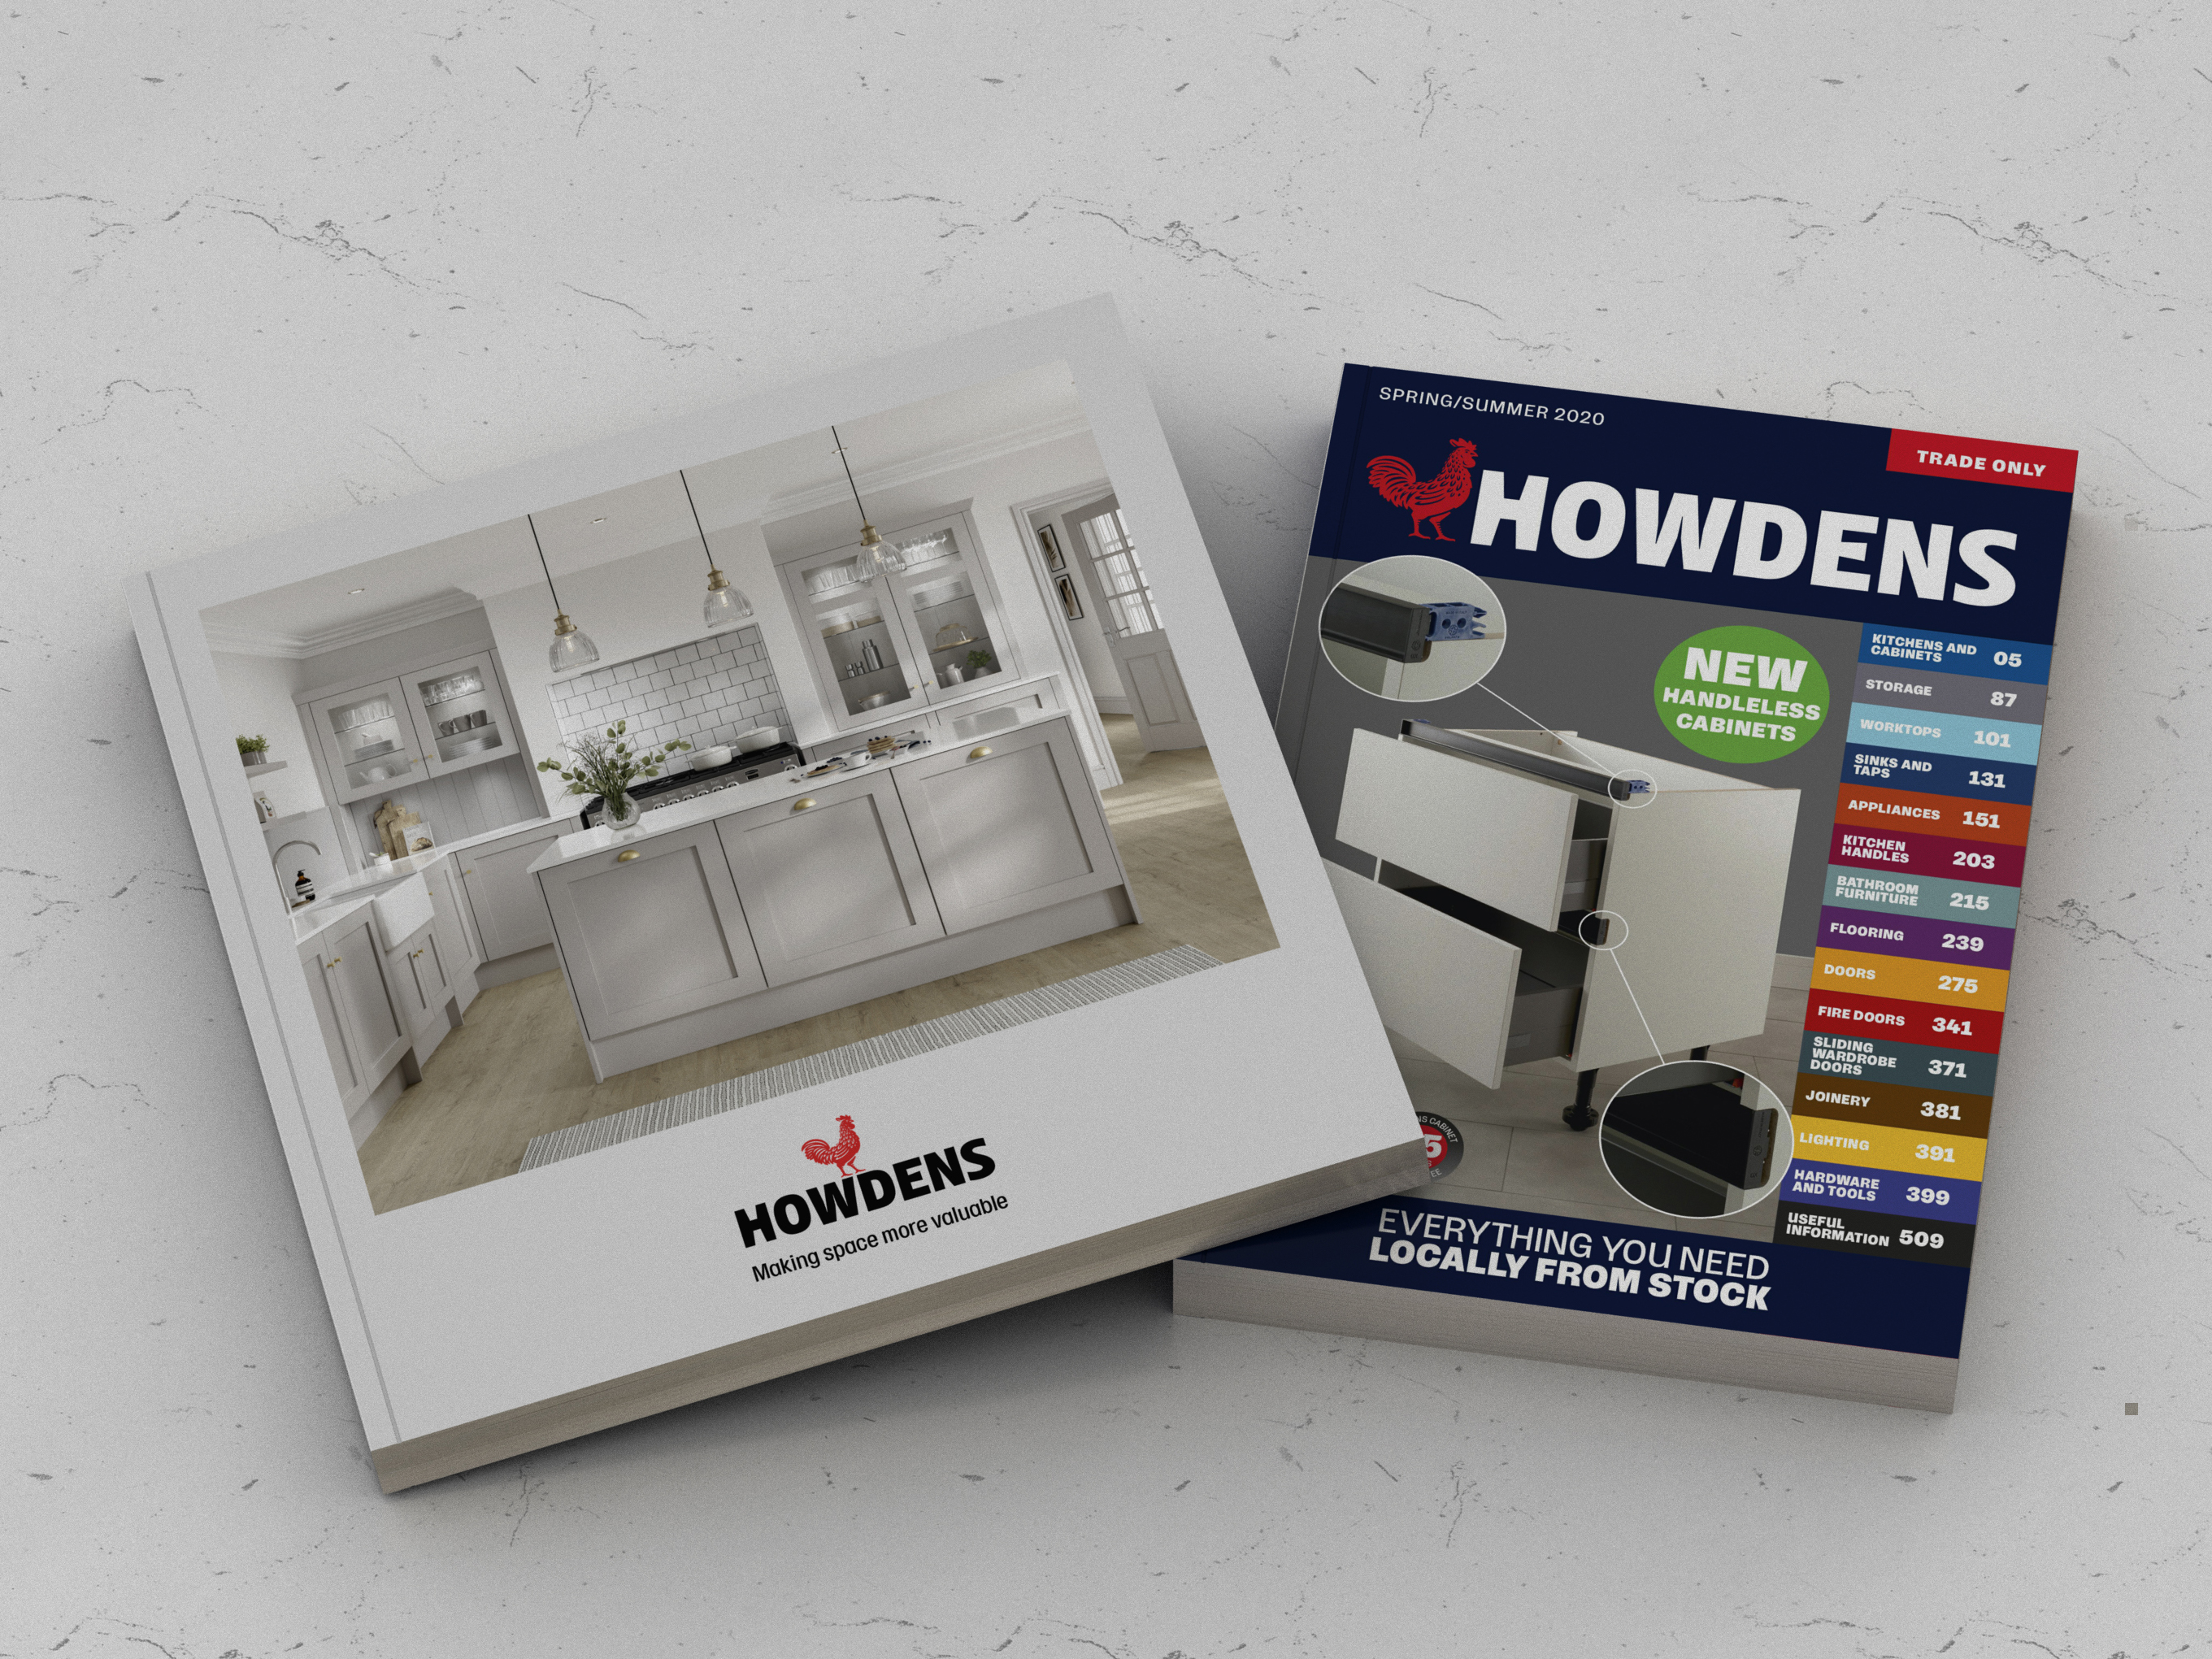 Howdens kitchens brochure and trade book.